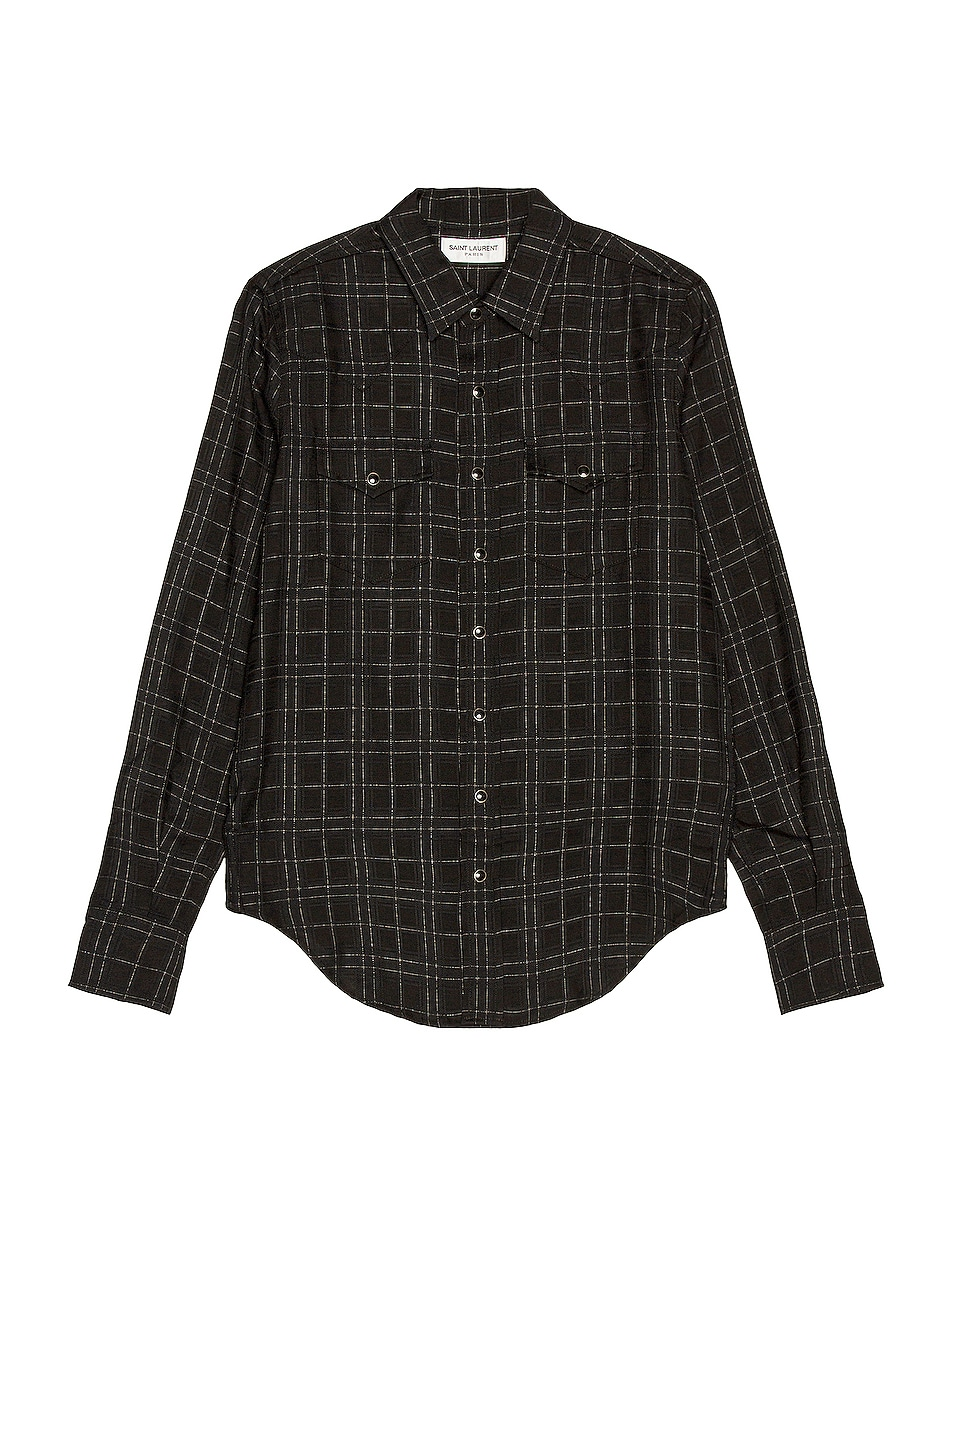 Image 1 of Saint Laurent Slim Western Shirt in Black & White